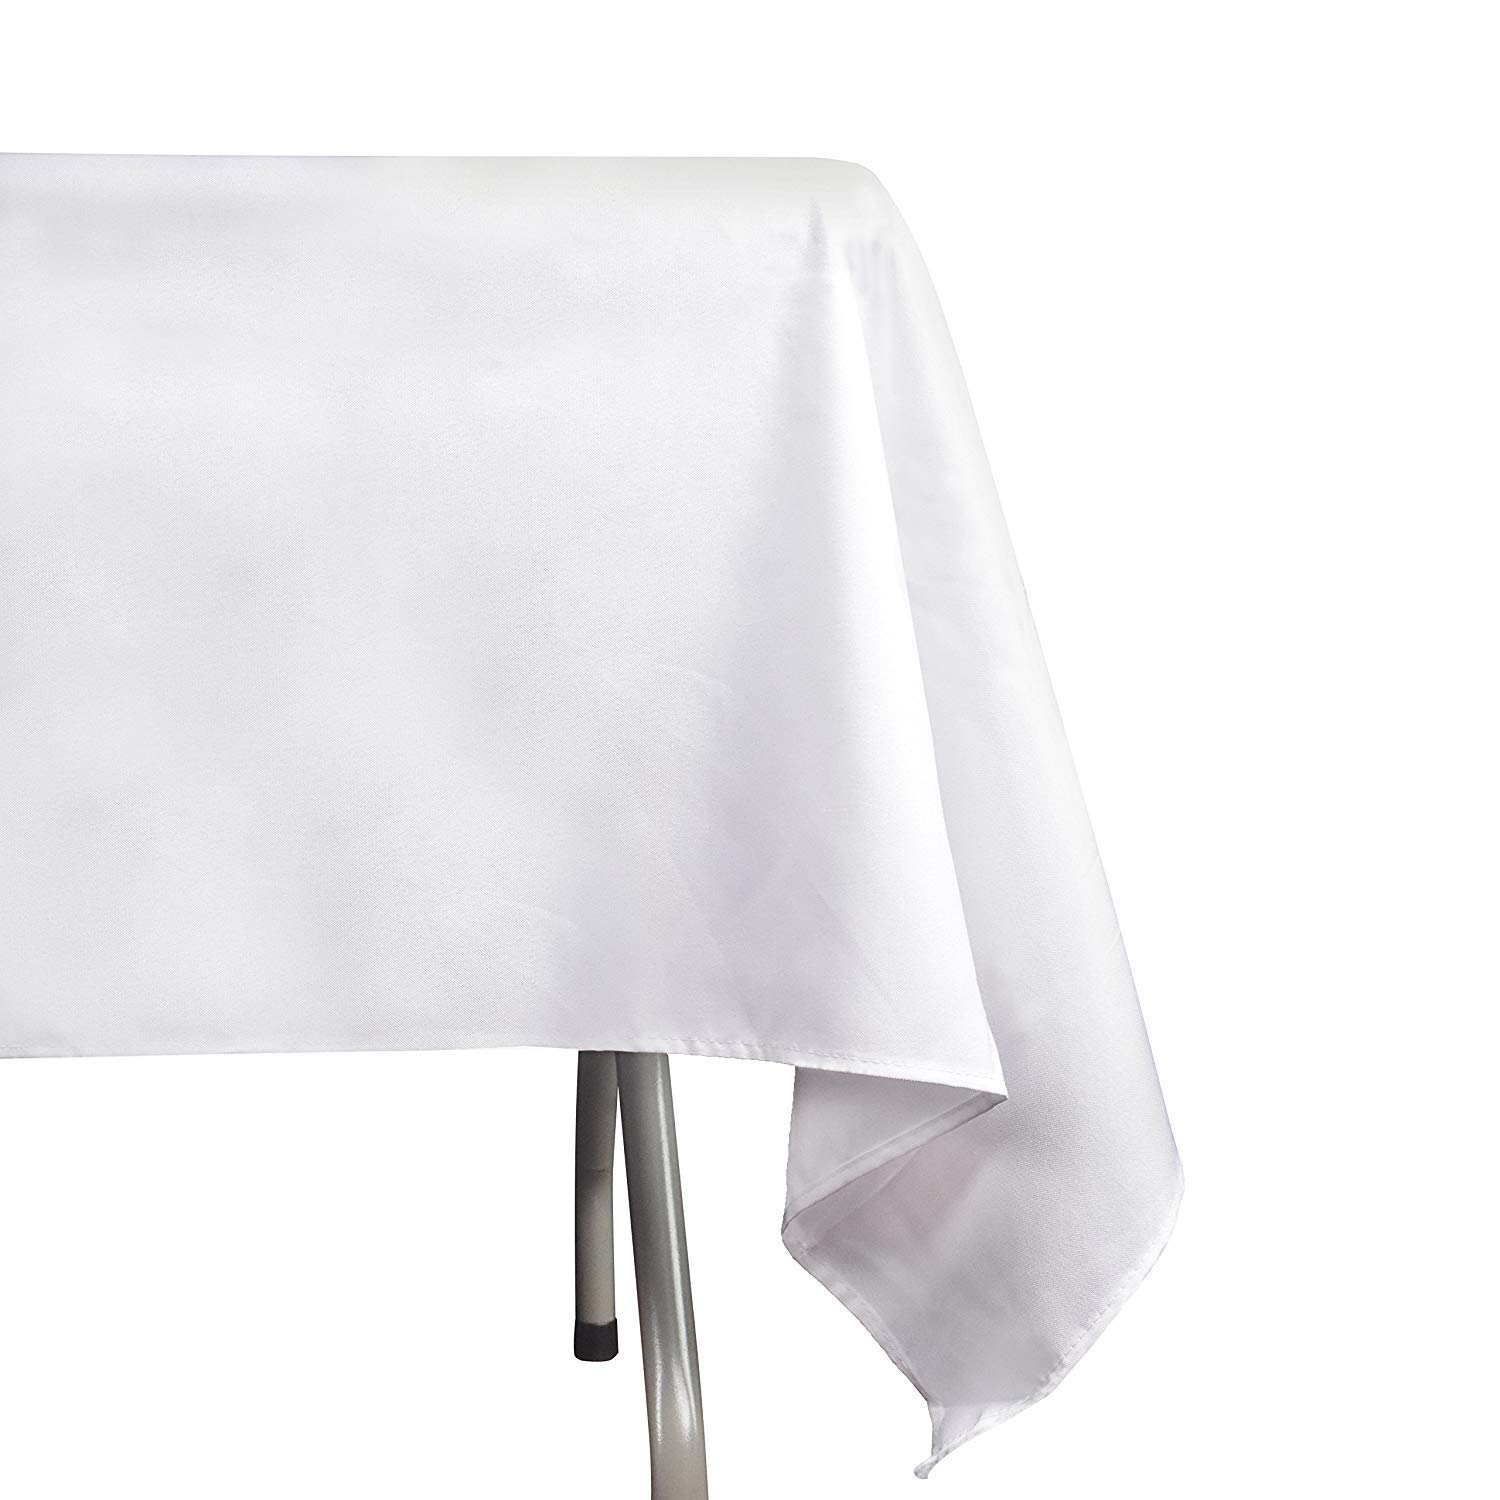 EMART Rectangle Tablecloth, 60 x 102 inch White 100% Polyester Banquet Wedding Party Picnic Rectangular Table Cloths (6 Pack) by EMART